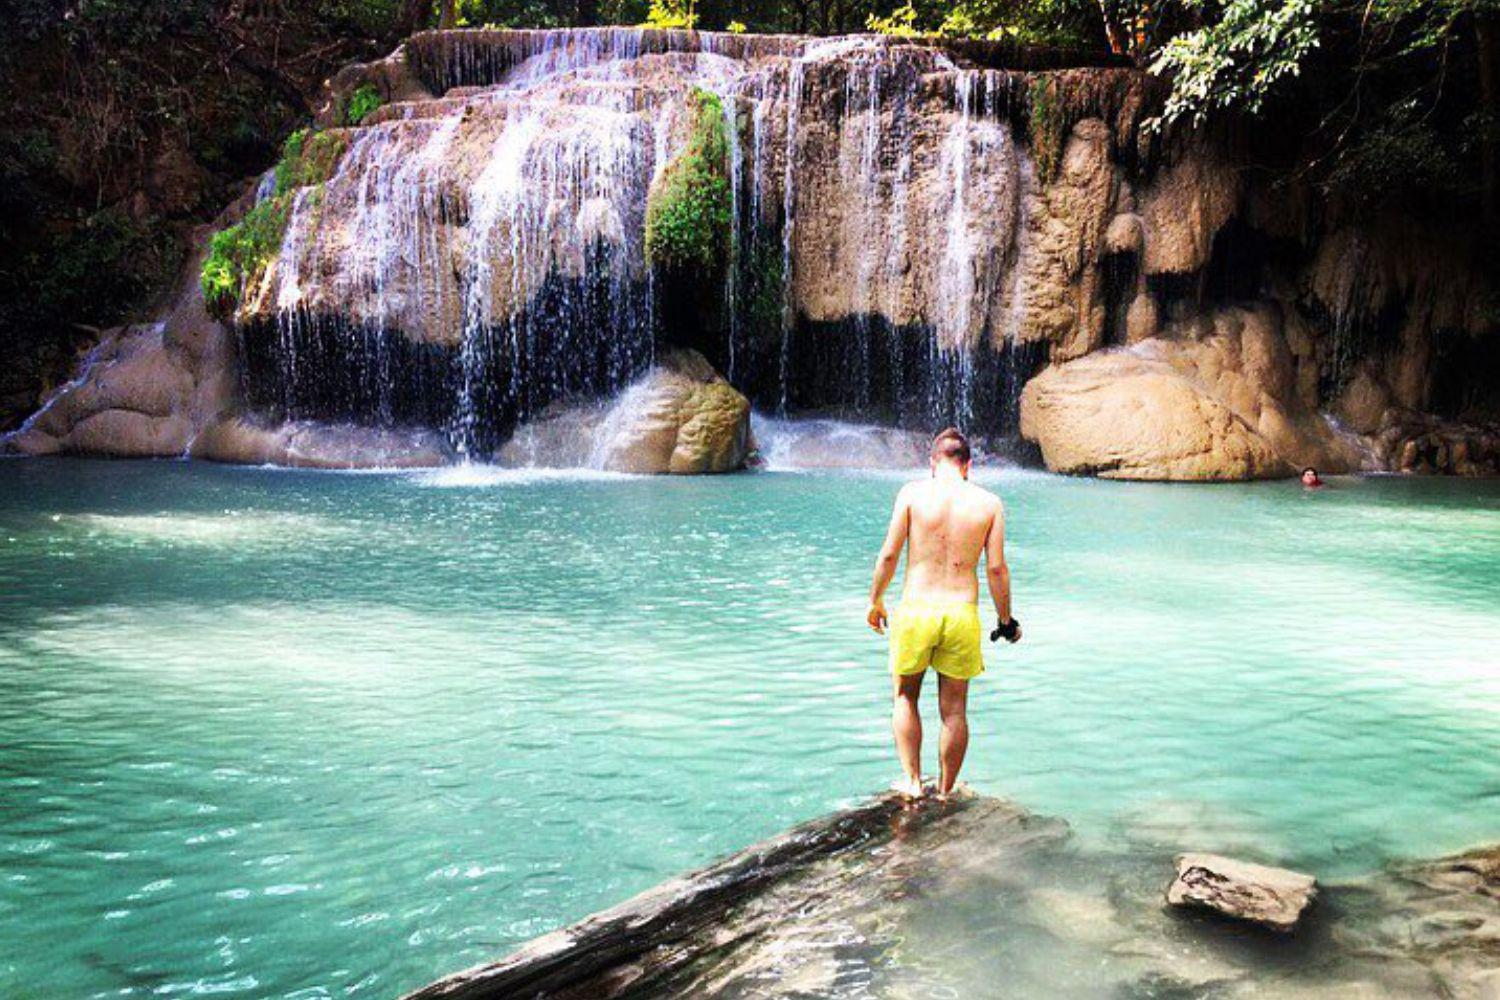 ERAWAN WATERFALL + TREKKING + ELEPHANT RIDDING + ELEPHAN BATH (MINIMUM 2PAX)